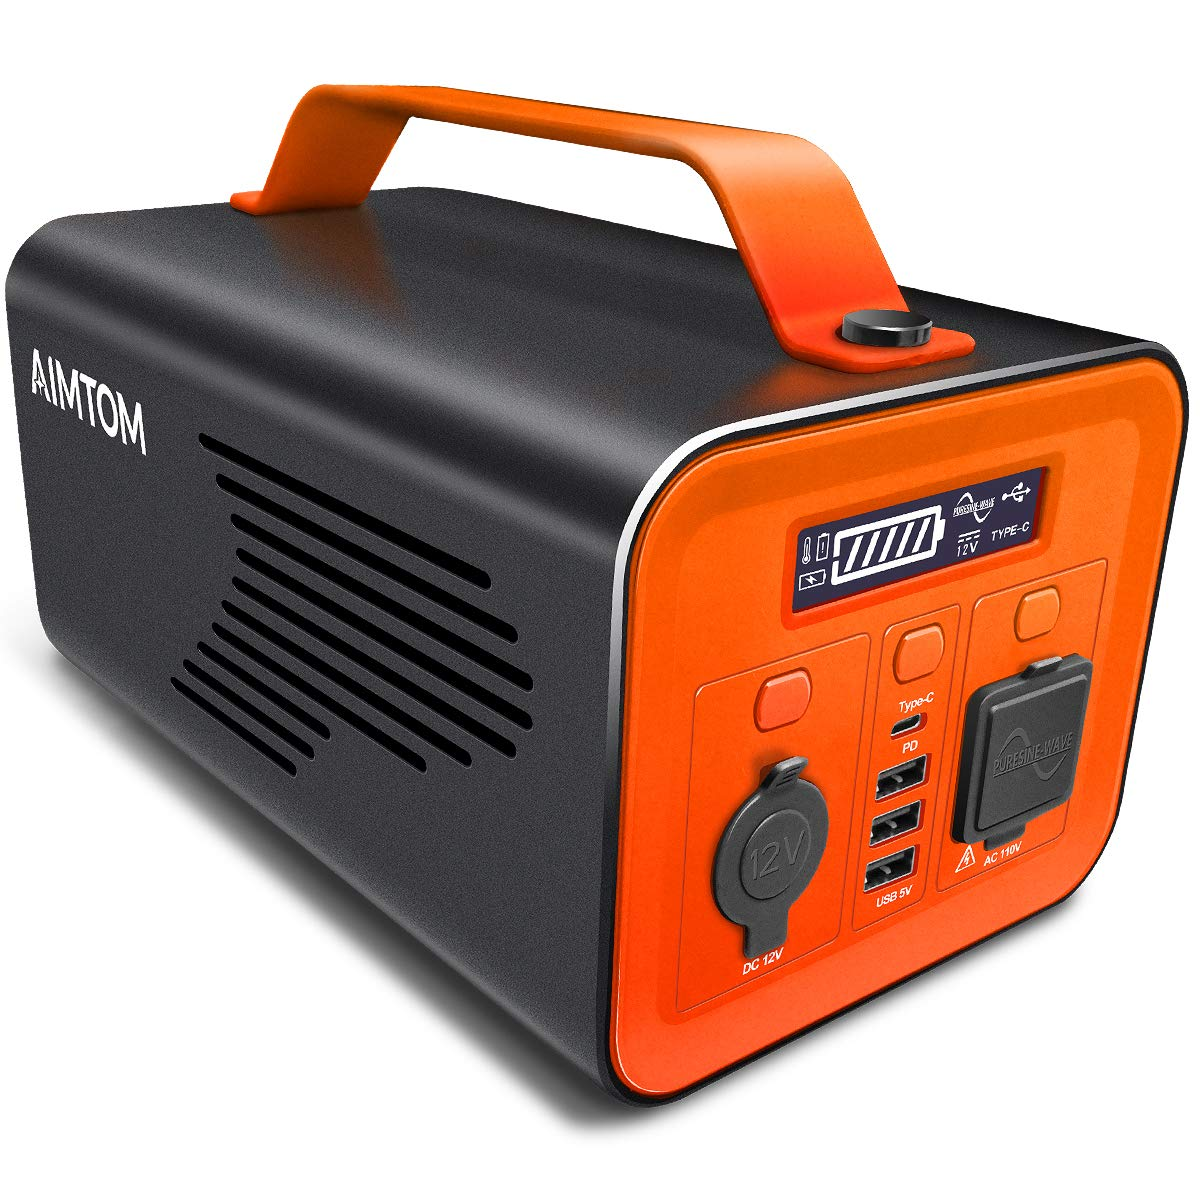 AIMTOM 230Wh 62400mAh Portable Power Station Solar Rechargeable Generator W/ 110V AC, 12V Car, Type-C PD, 3X USB Outputs, Pure Sine Wave Inverter, CPAP Battery, for Outdoor, Camping, Home and Travel product image